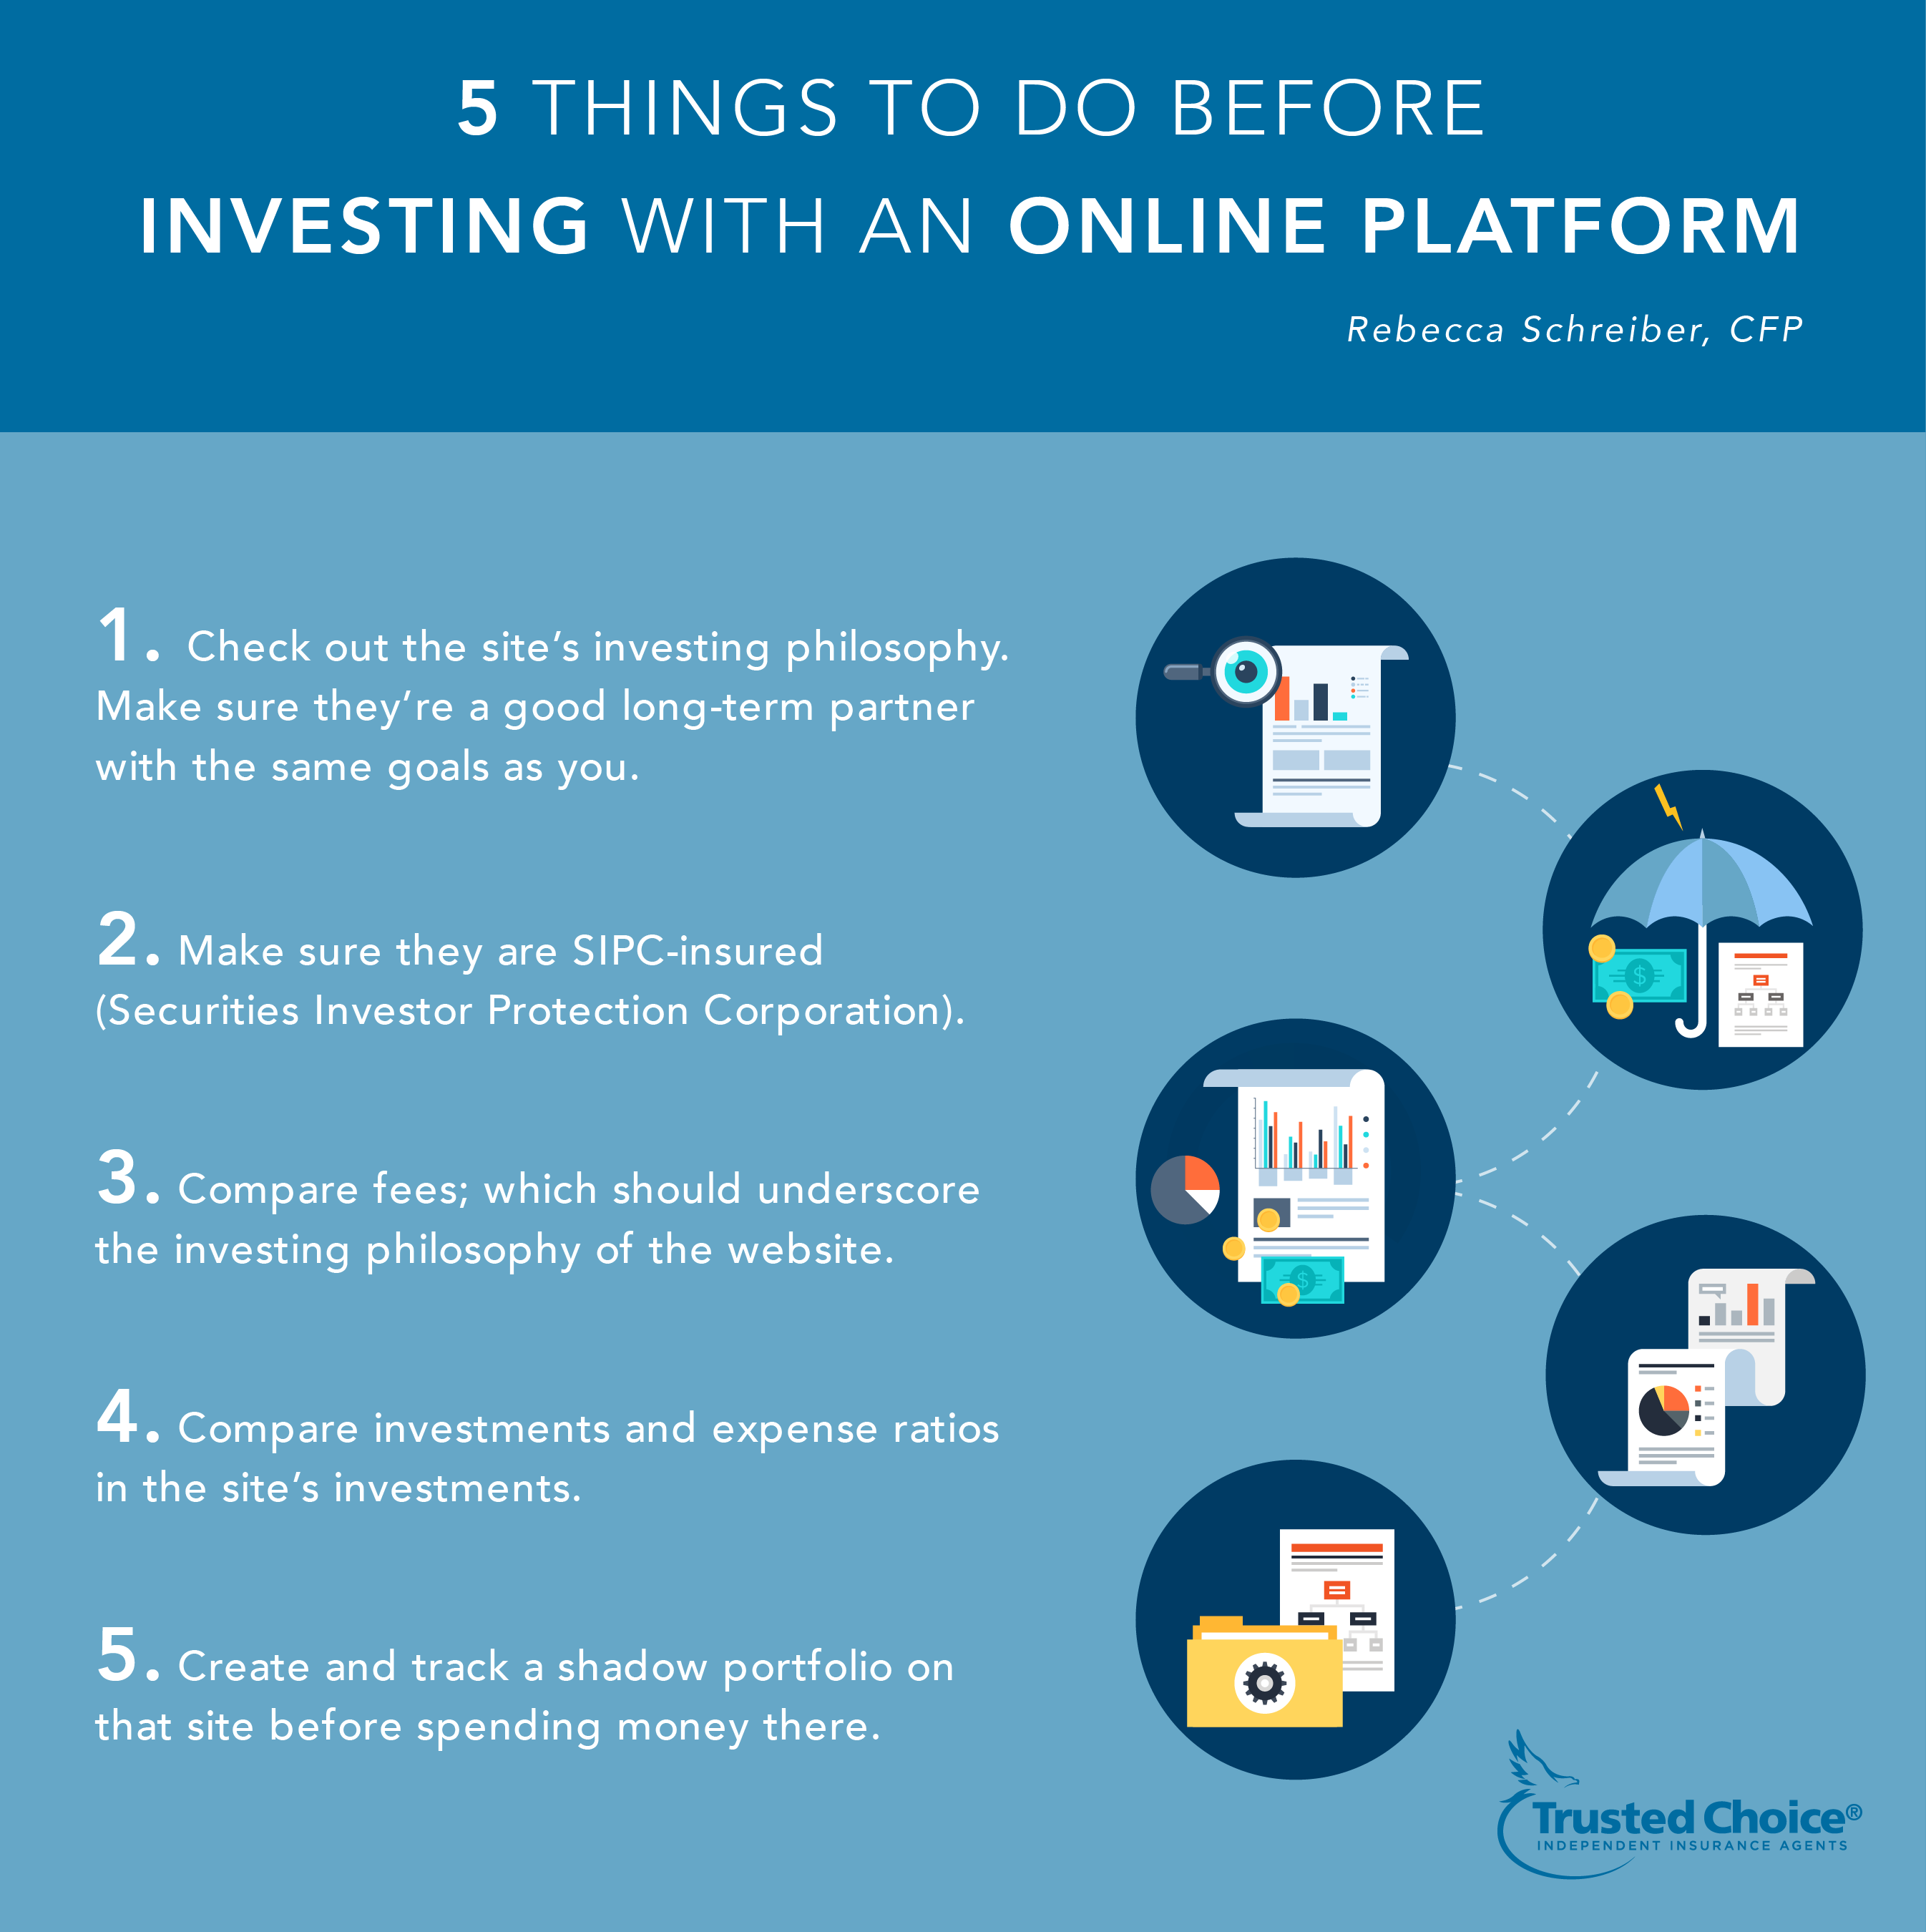 Online investing